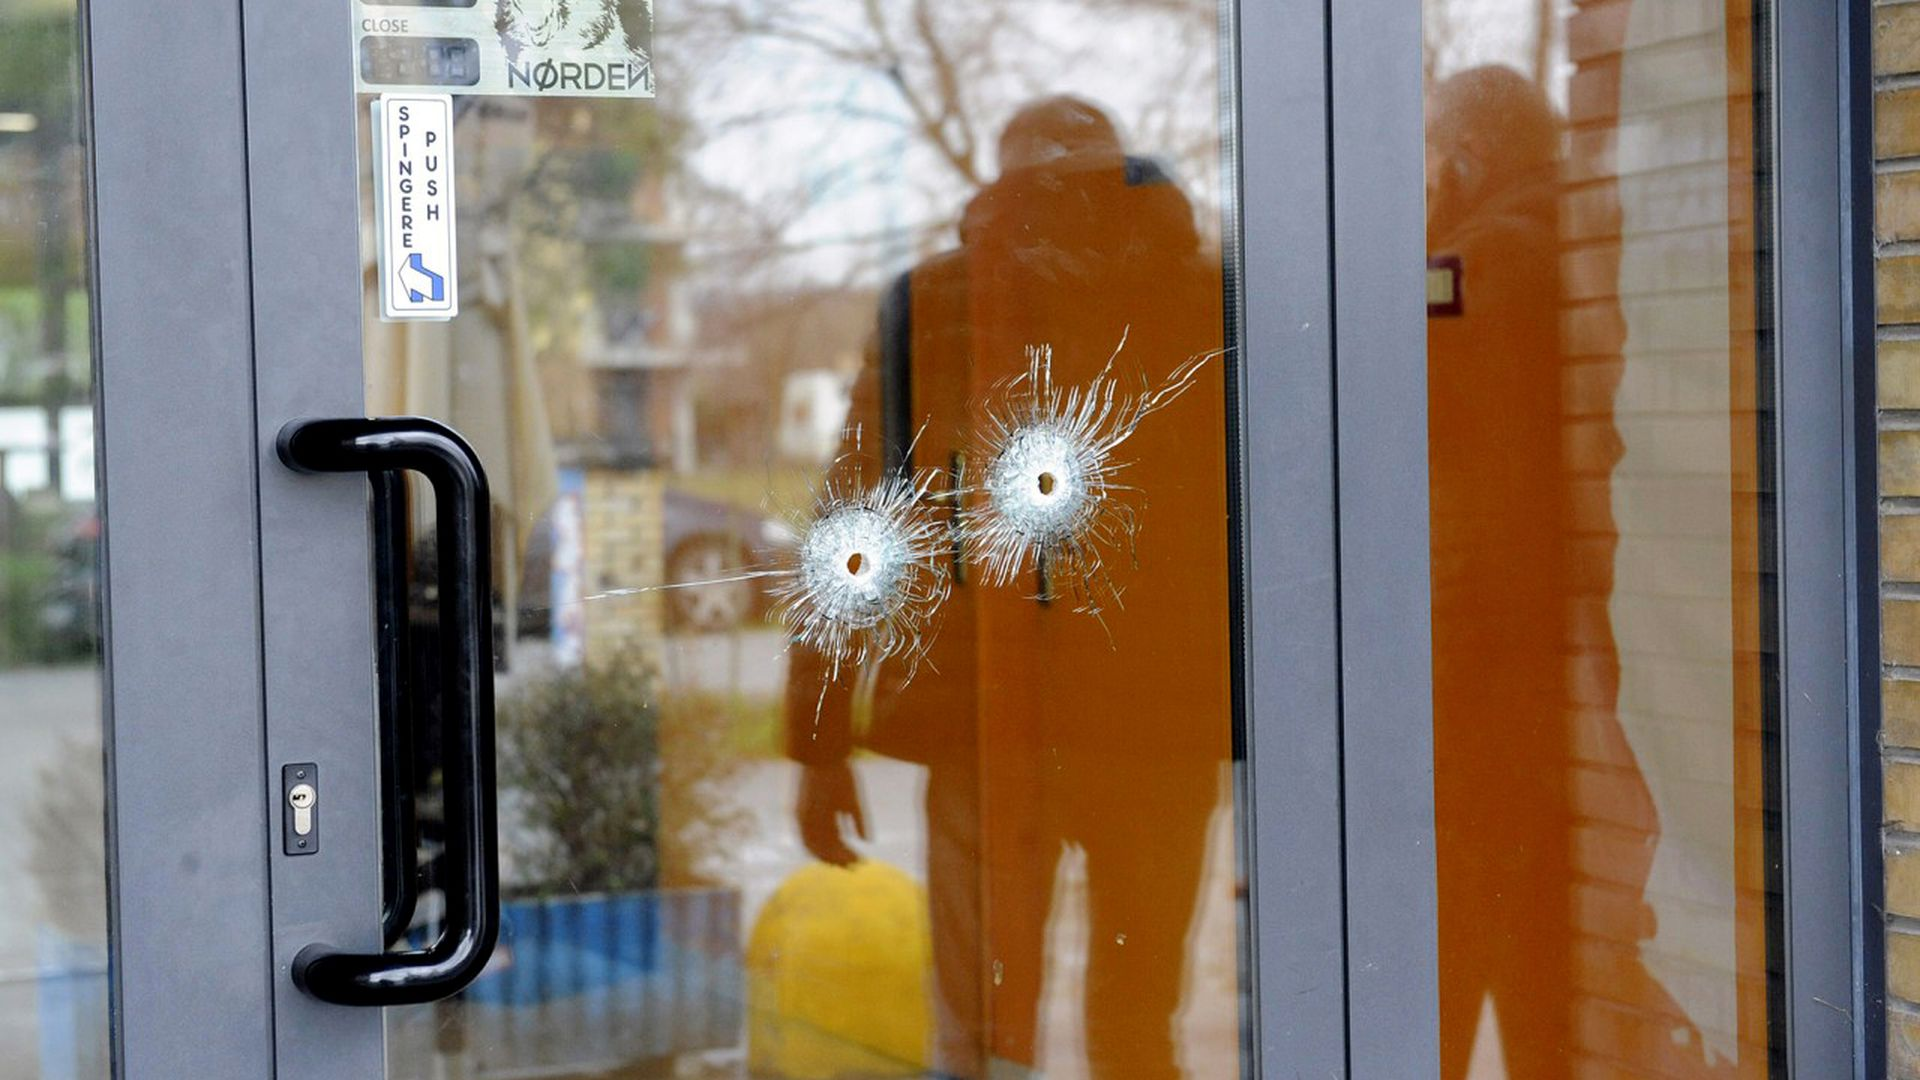 Bullet holes are seen in a glass door following a drive-by shooting at Macerata.